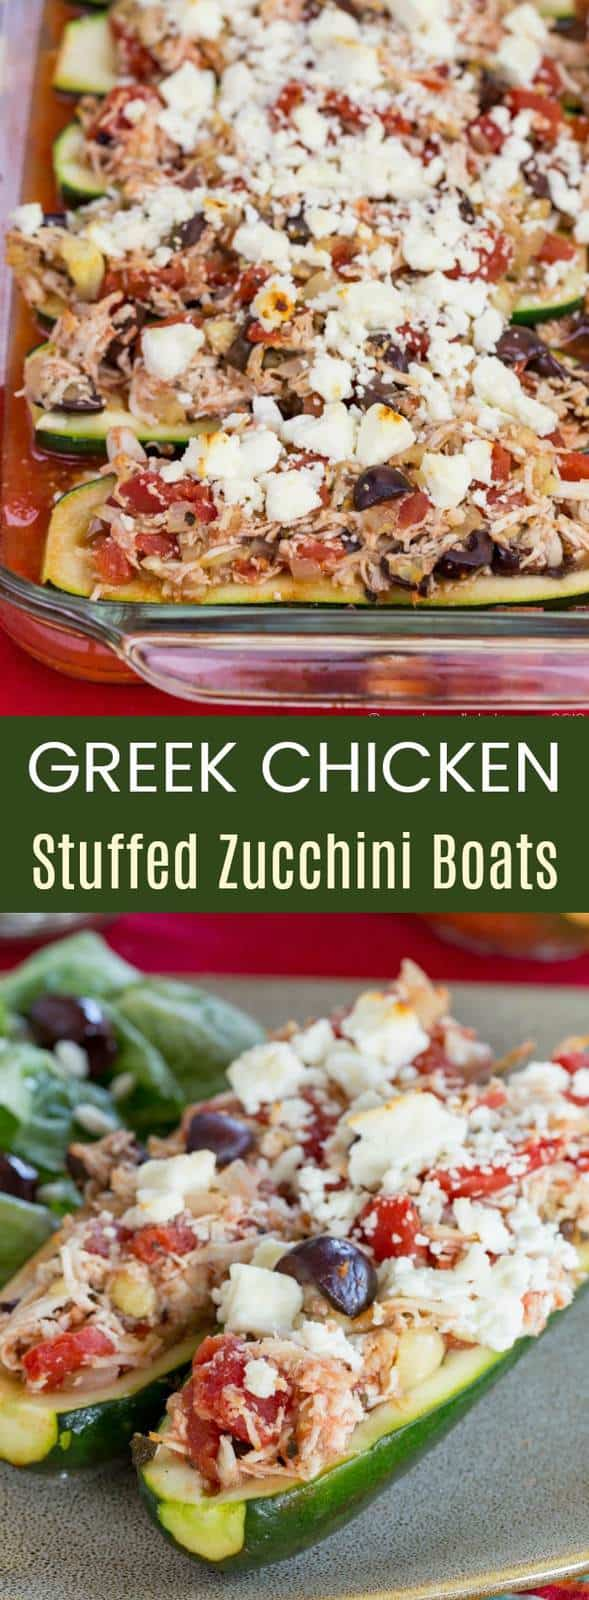 Greek Chicken Stuffed Zucchini Boats Recipes from cupcakesandkalechips